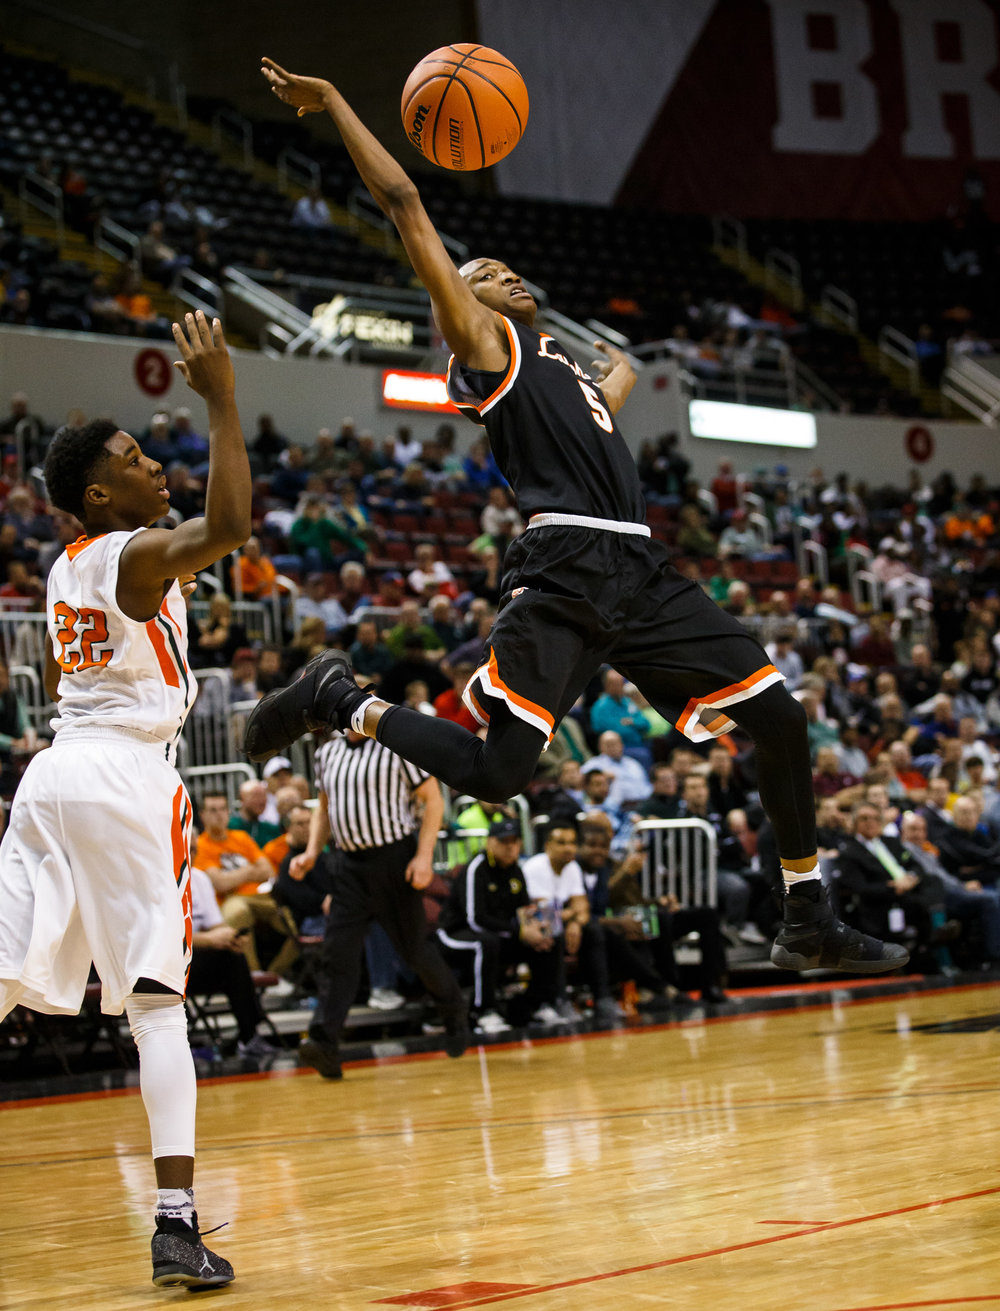 Lanphier's James Jones (5) loses control of the ball as he is hit by Chicago Morgan Park's Marcus Watson (22) driving up to the basket in the third quarter during the semifinals of the IHSA Class 3A Basketball State Finals at Carver Arena, Friday, March 17, 2017, in Peoria, Ill. [Justin L. Fowler/The State Journal-Register]